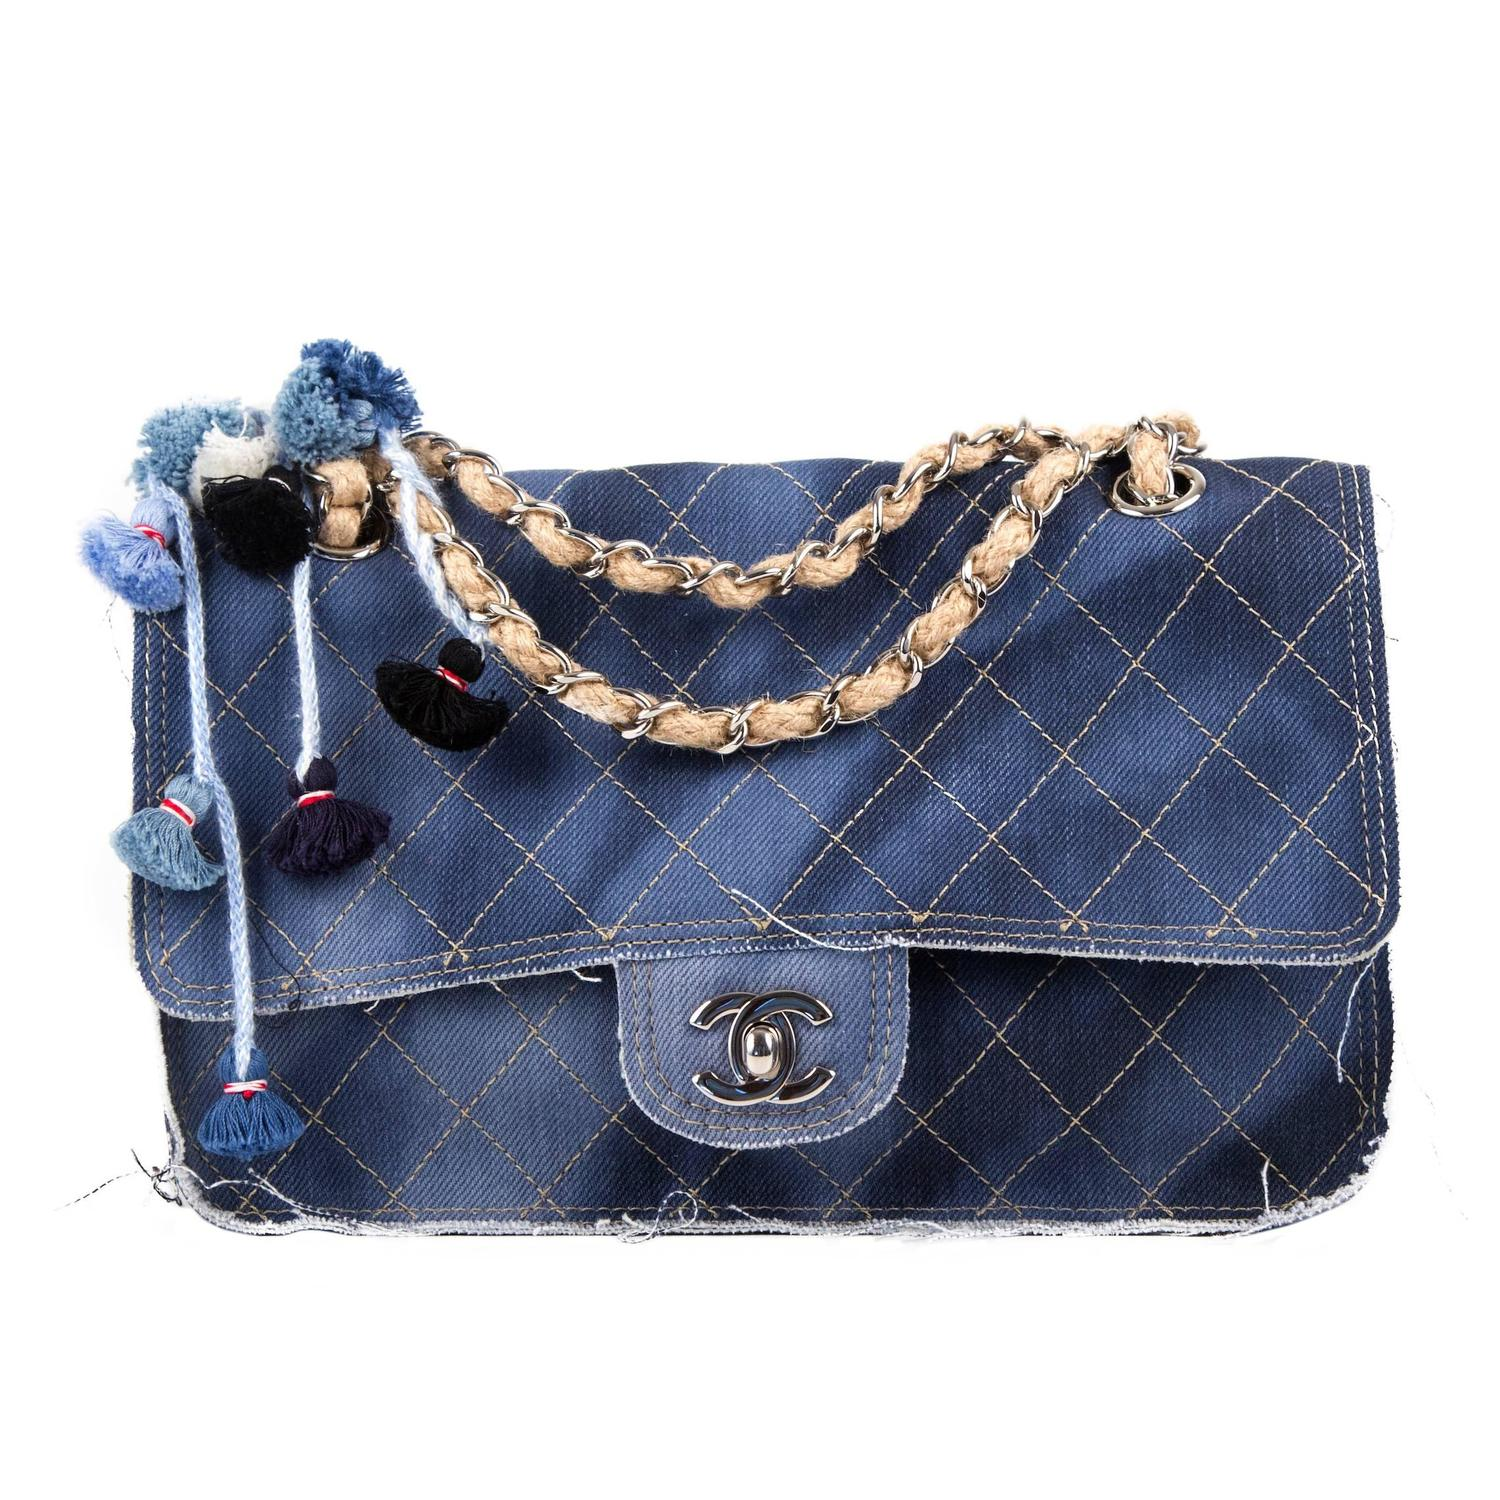 0469a262edde Chanel Denim 2018 Handbags | Stanford Center for Opportunity Policy ...